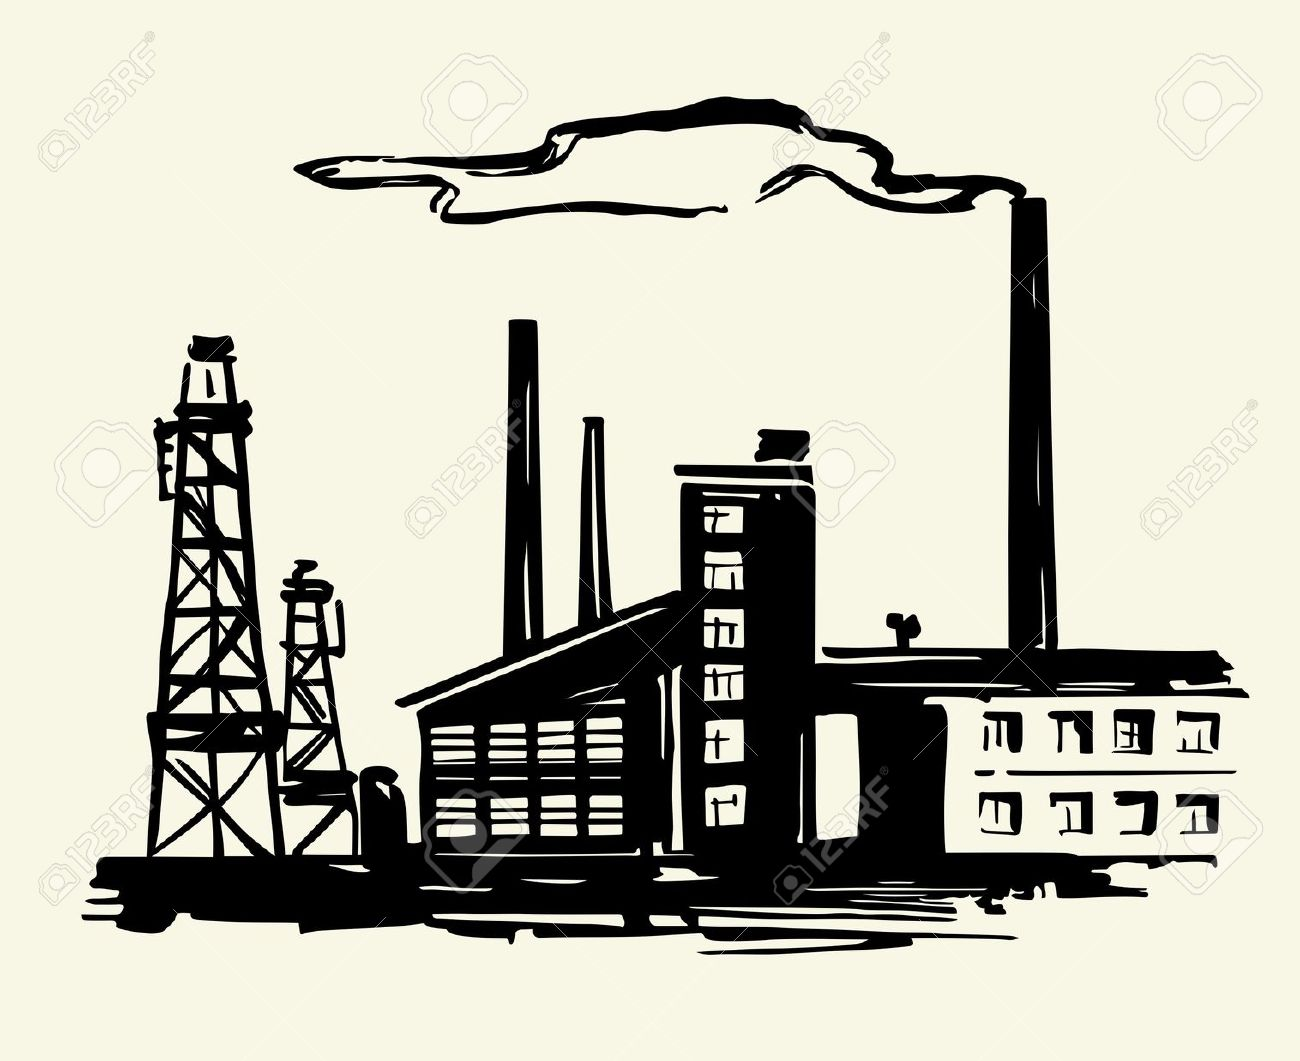 Factories Clip Art.